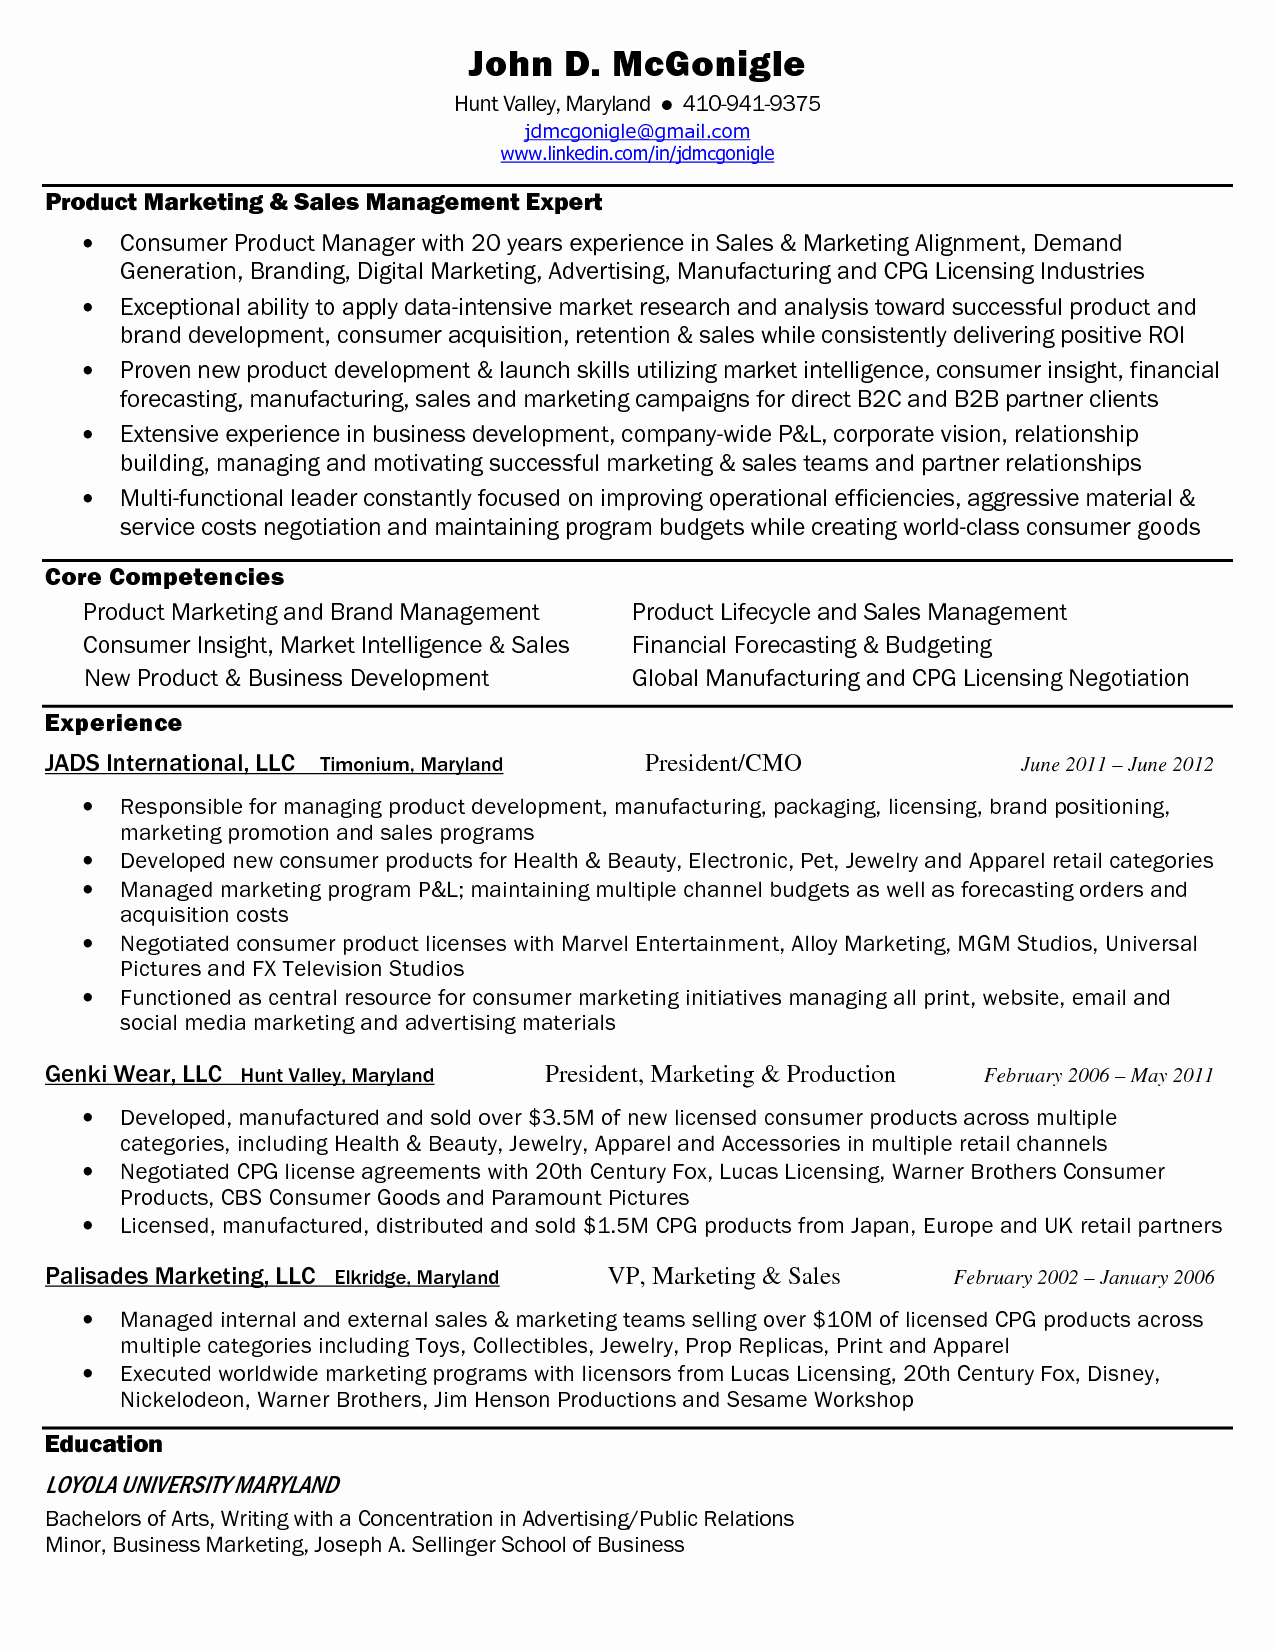 Resume Samples for Marketing Manager Products